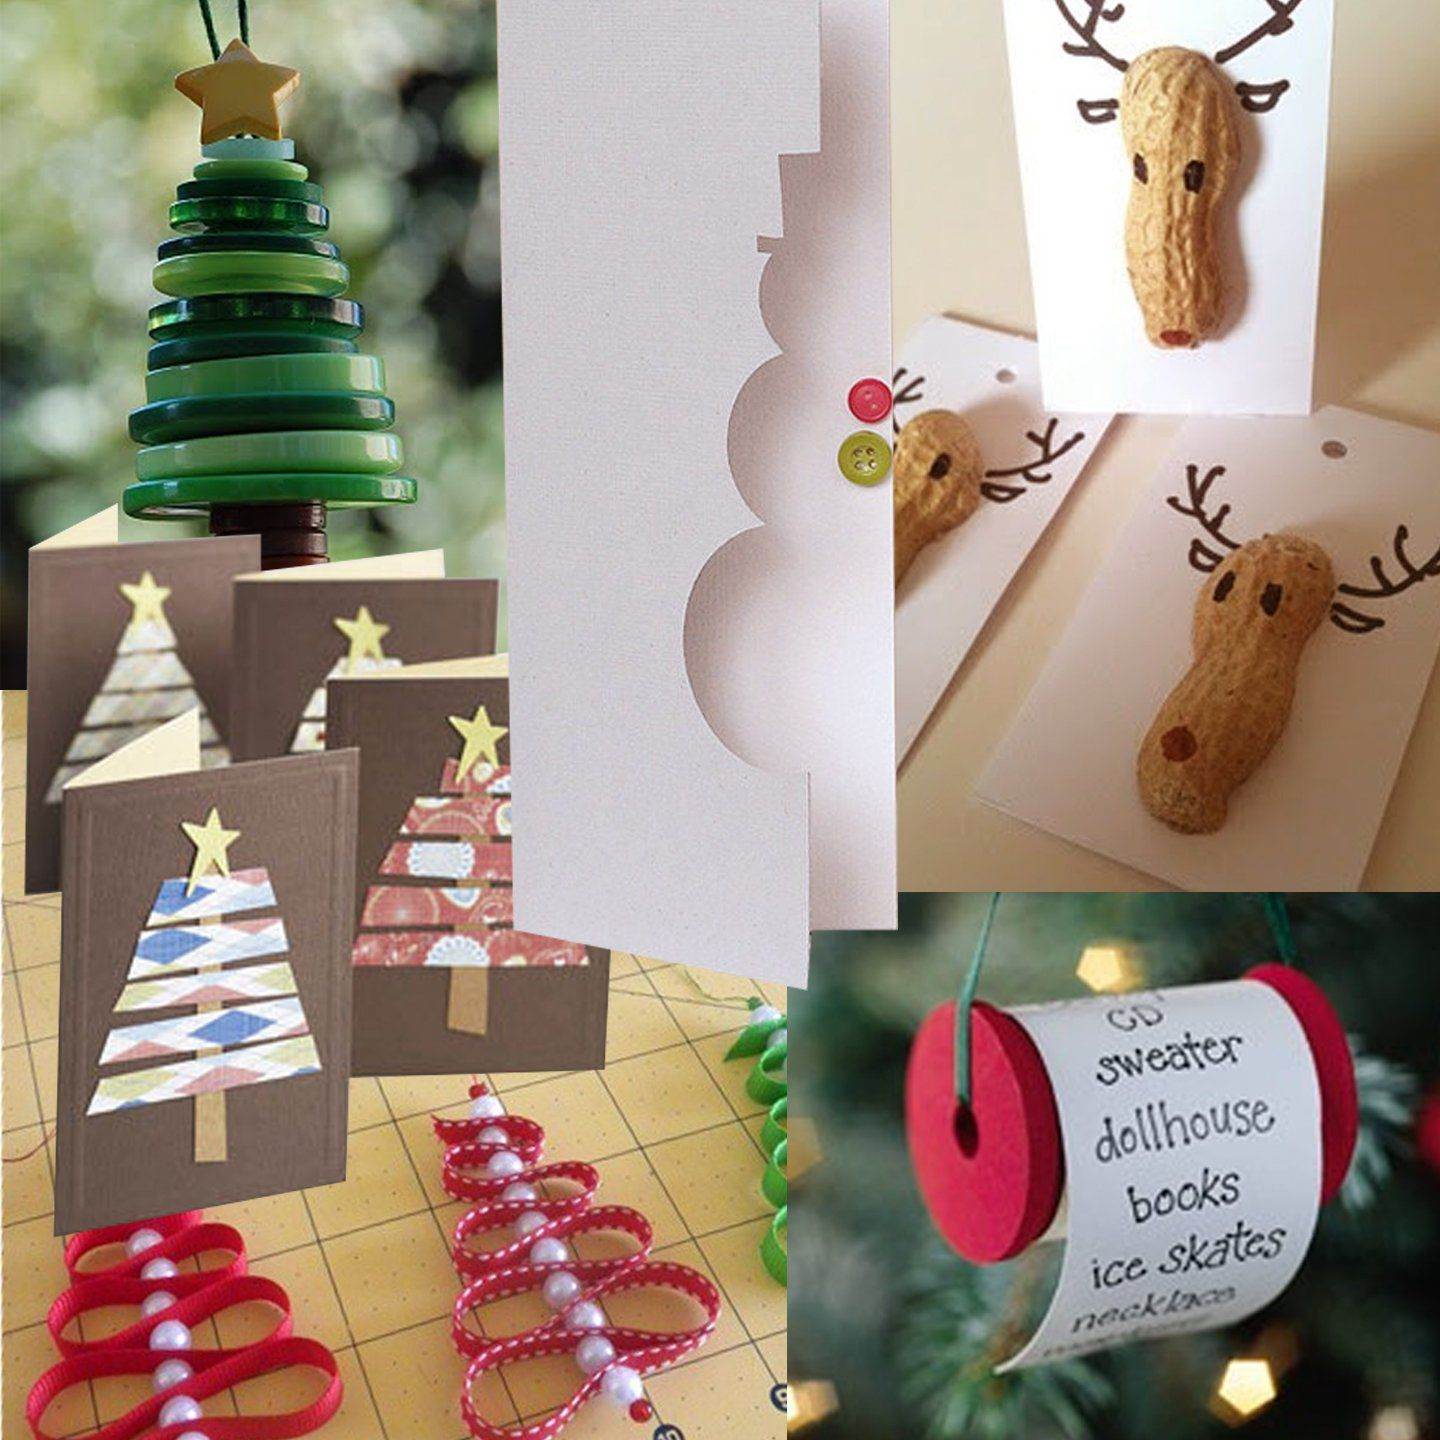 Christmas Room Ideas Diy Decorations Xmas Decorations: diy christmas tree decorations